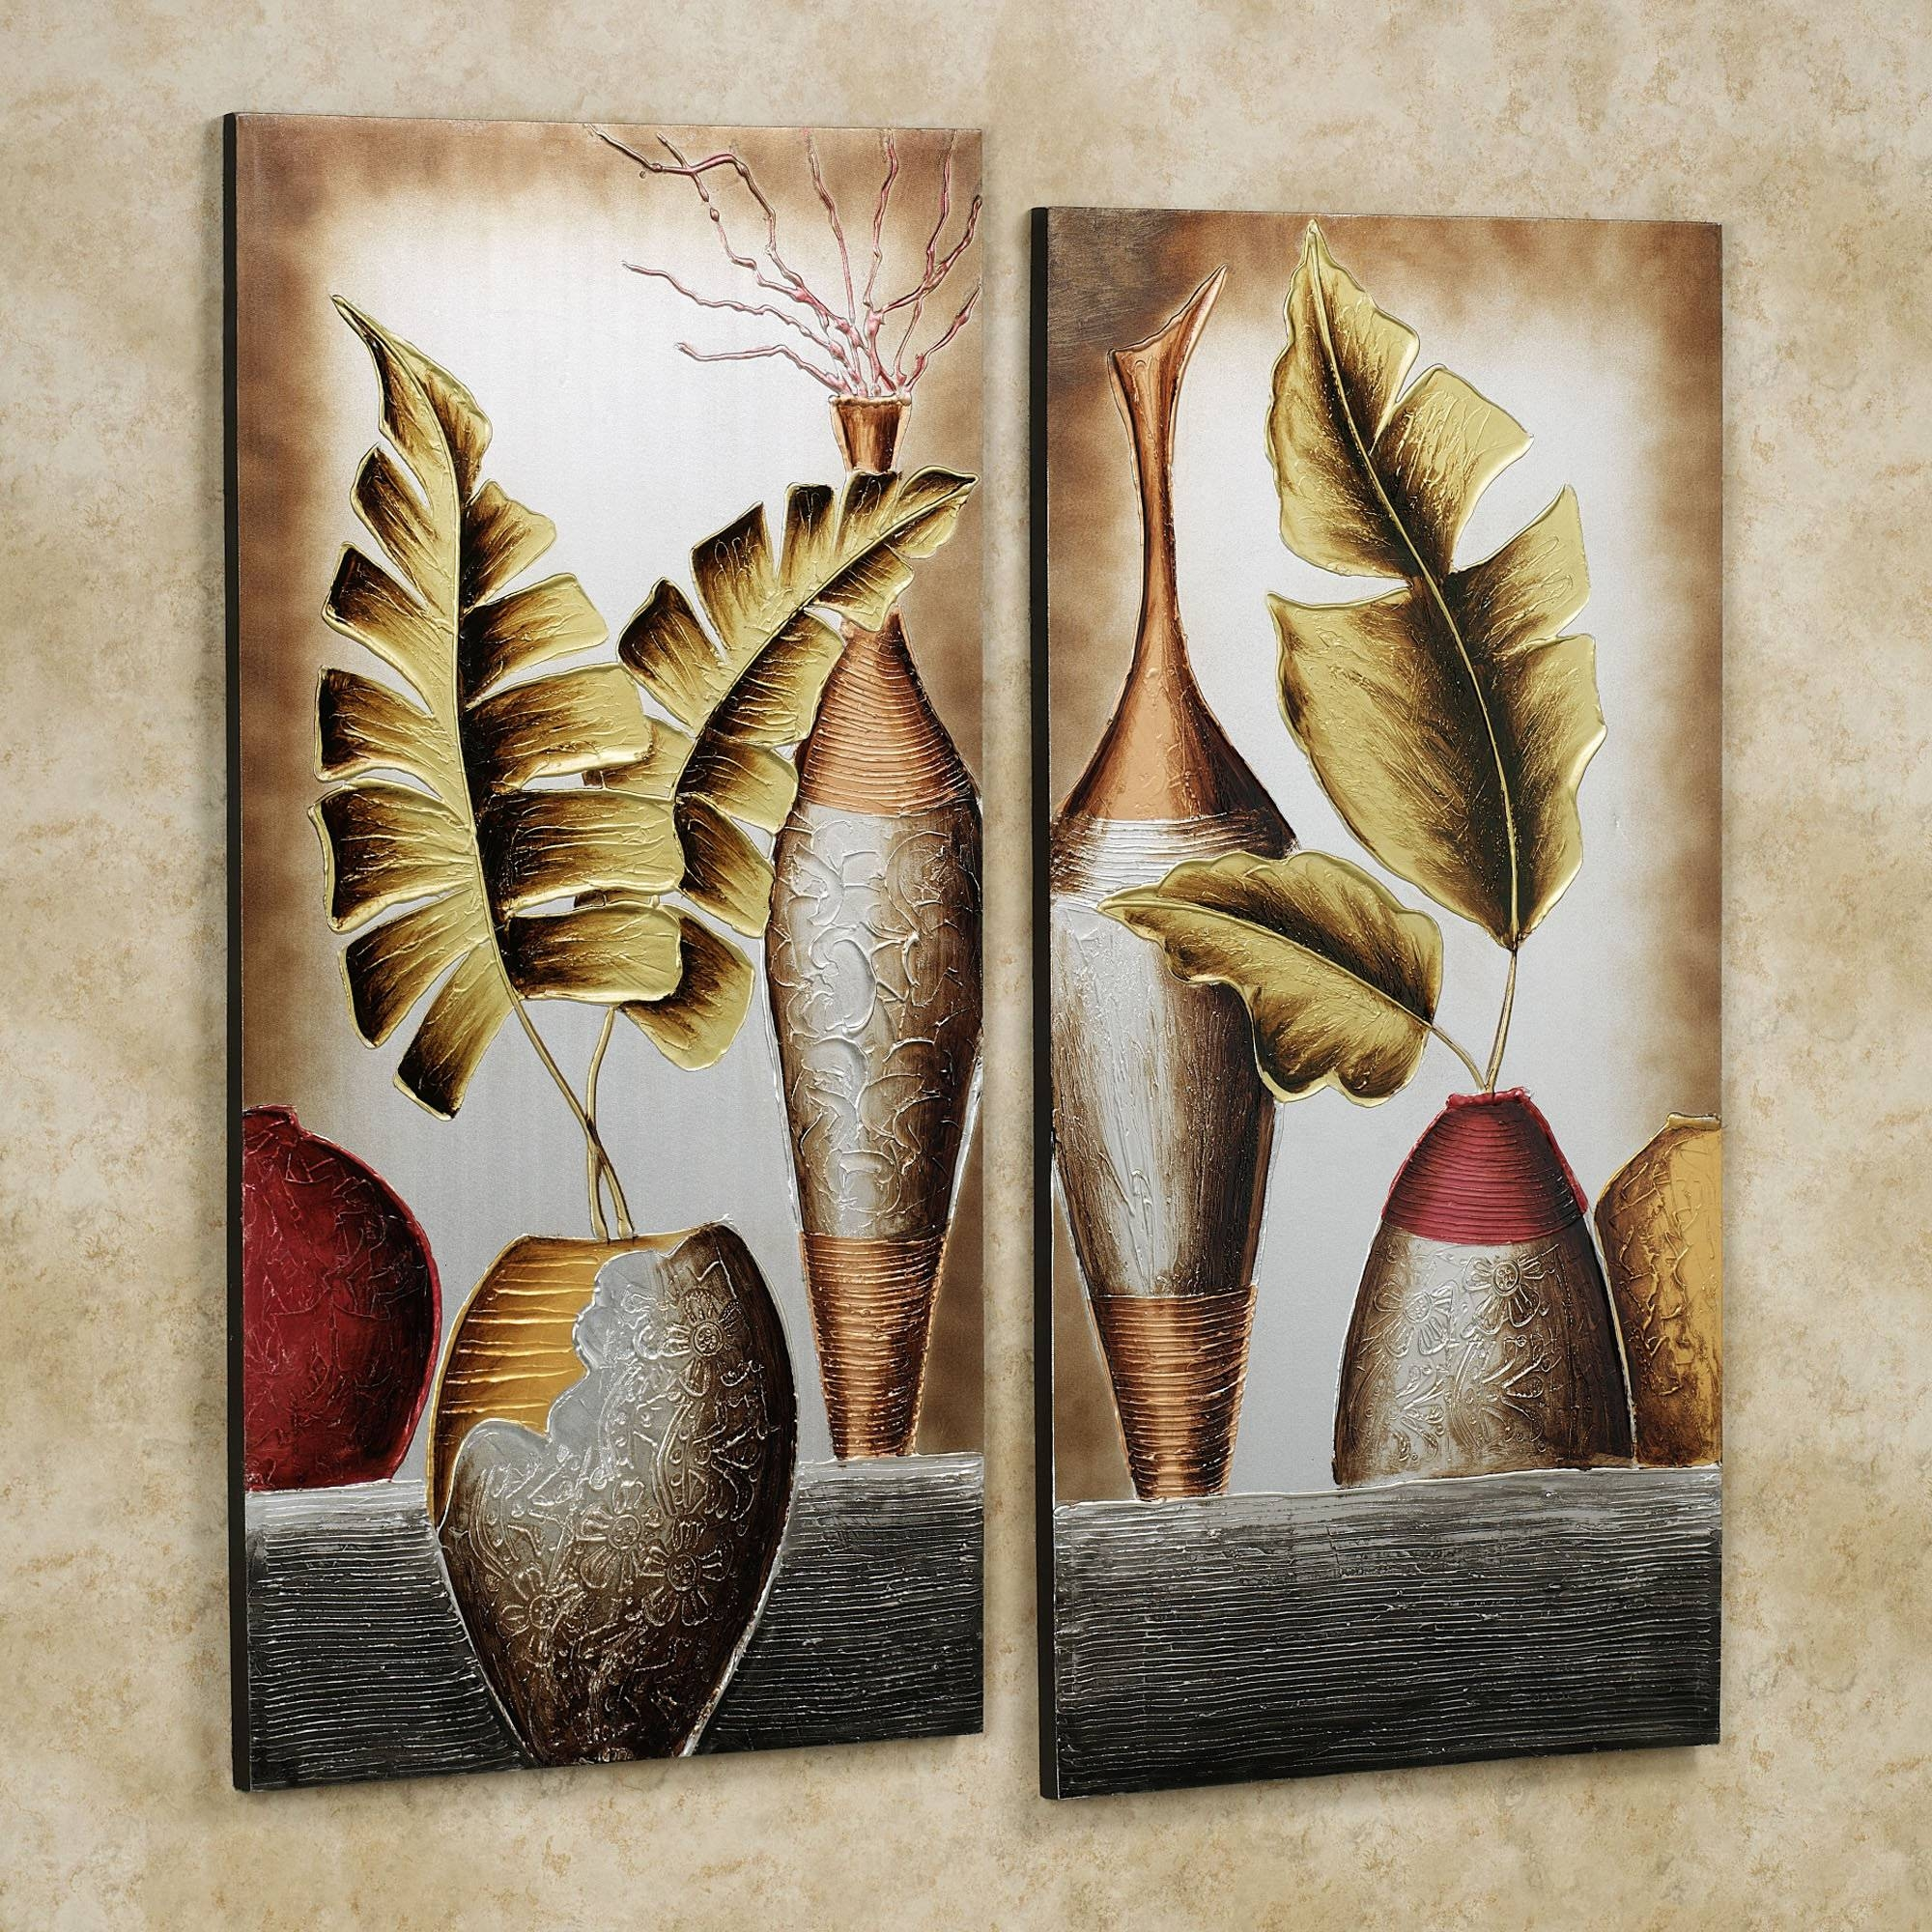 Impressive 3 Canvas Wall Art Set Wall Art Overstock Canvas Canvas Within Most Recent Canvas Wall Art Sets Of  (View 14 of 25)